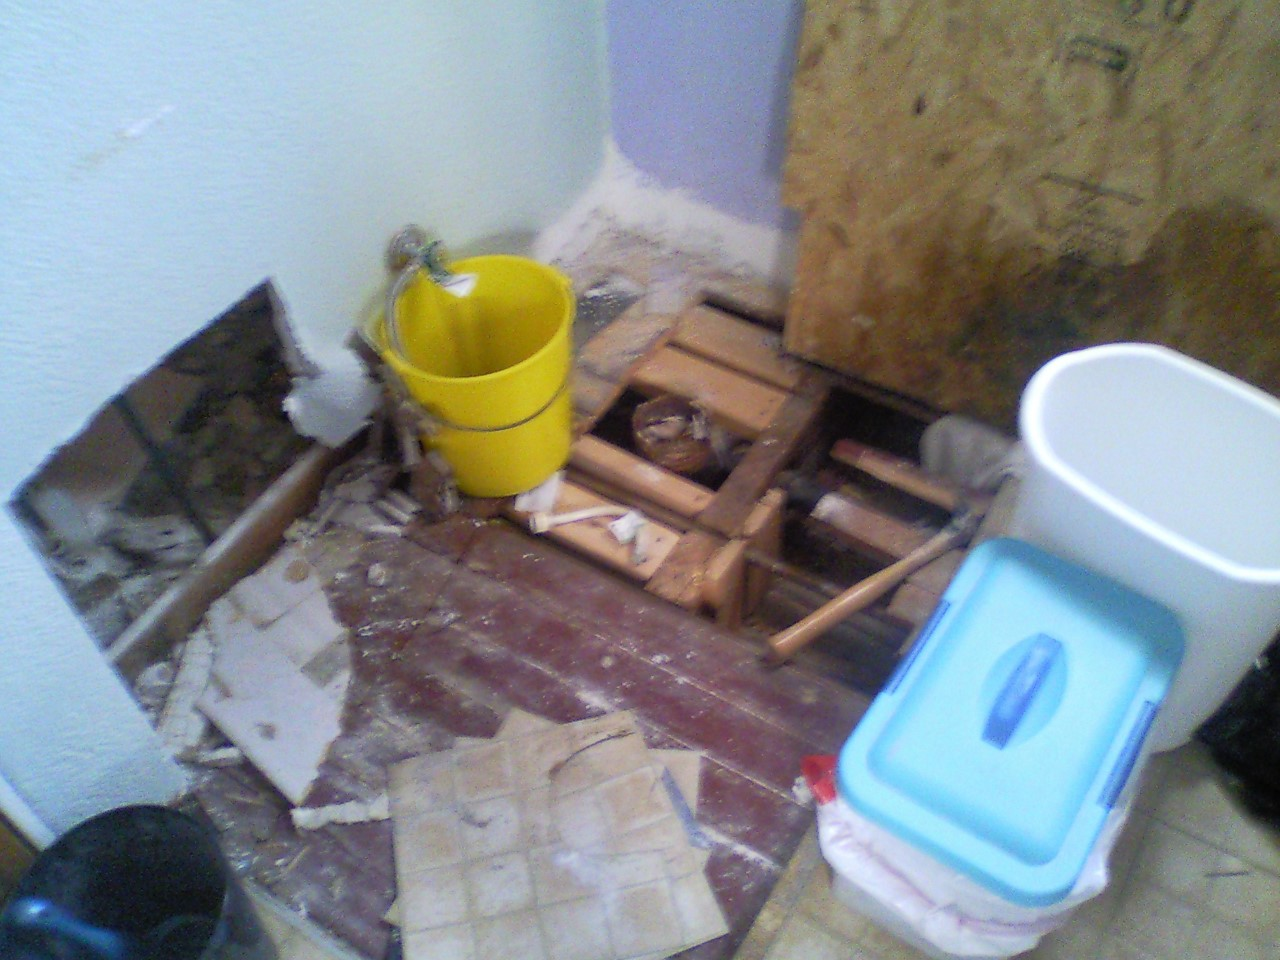 This shows damage to bathroom floor being repaired.